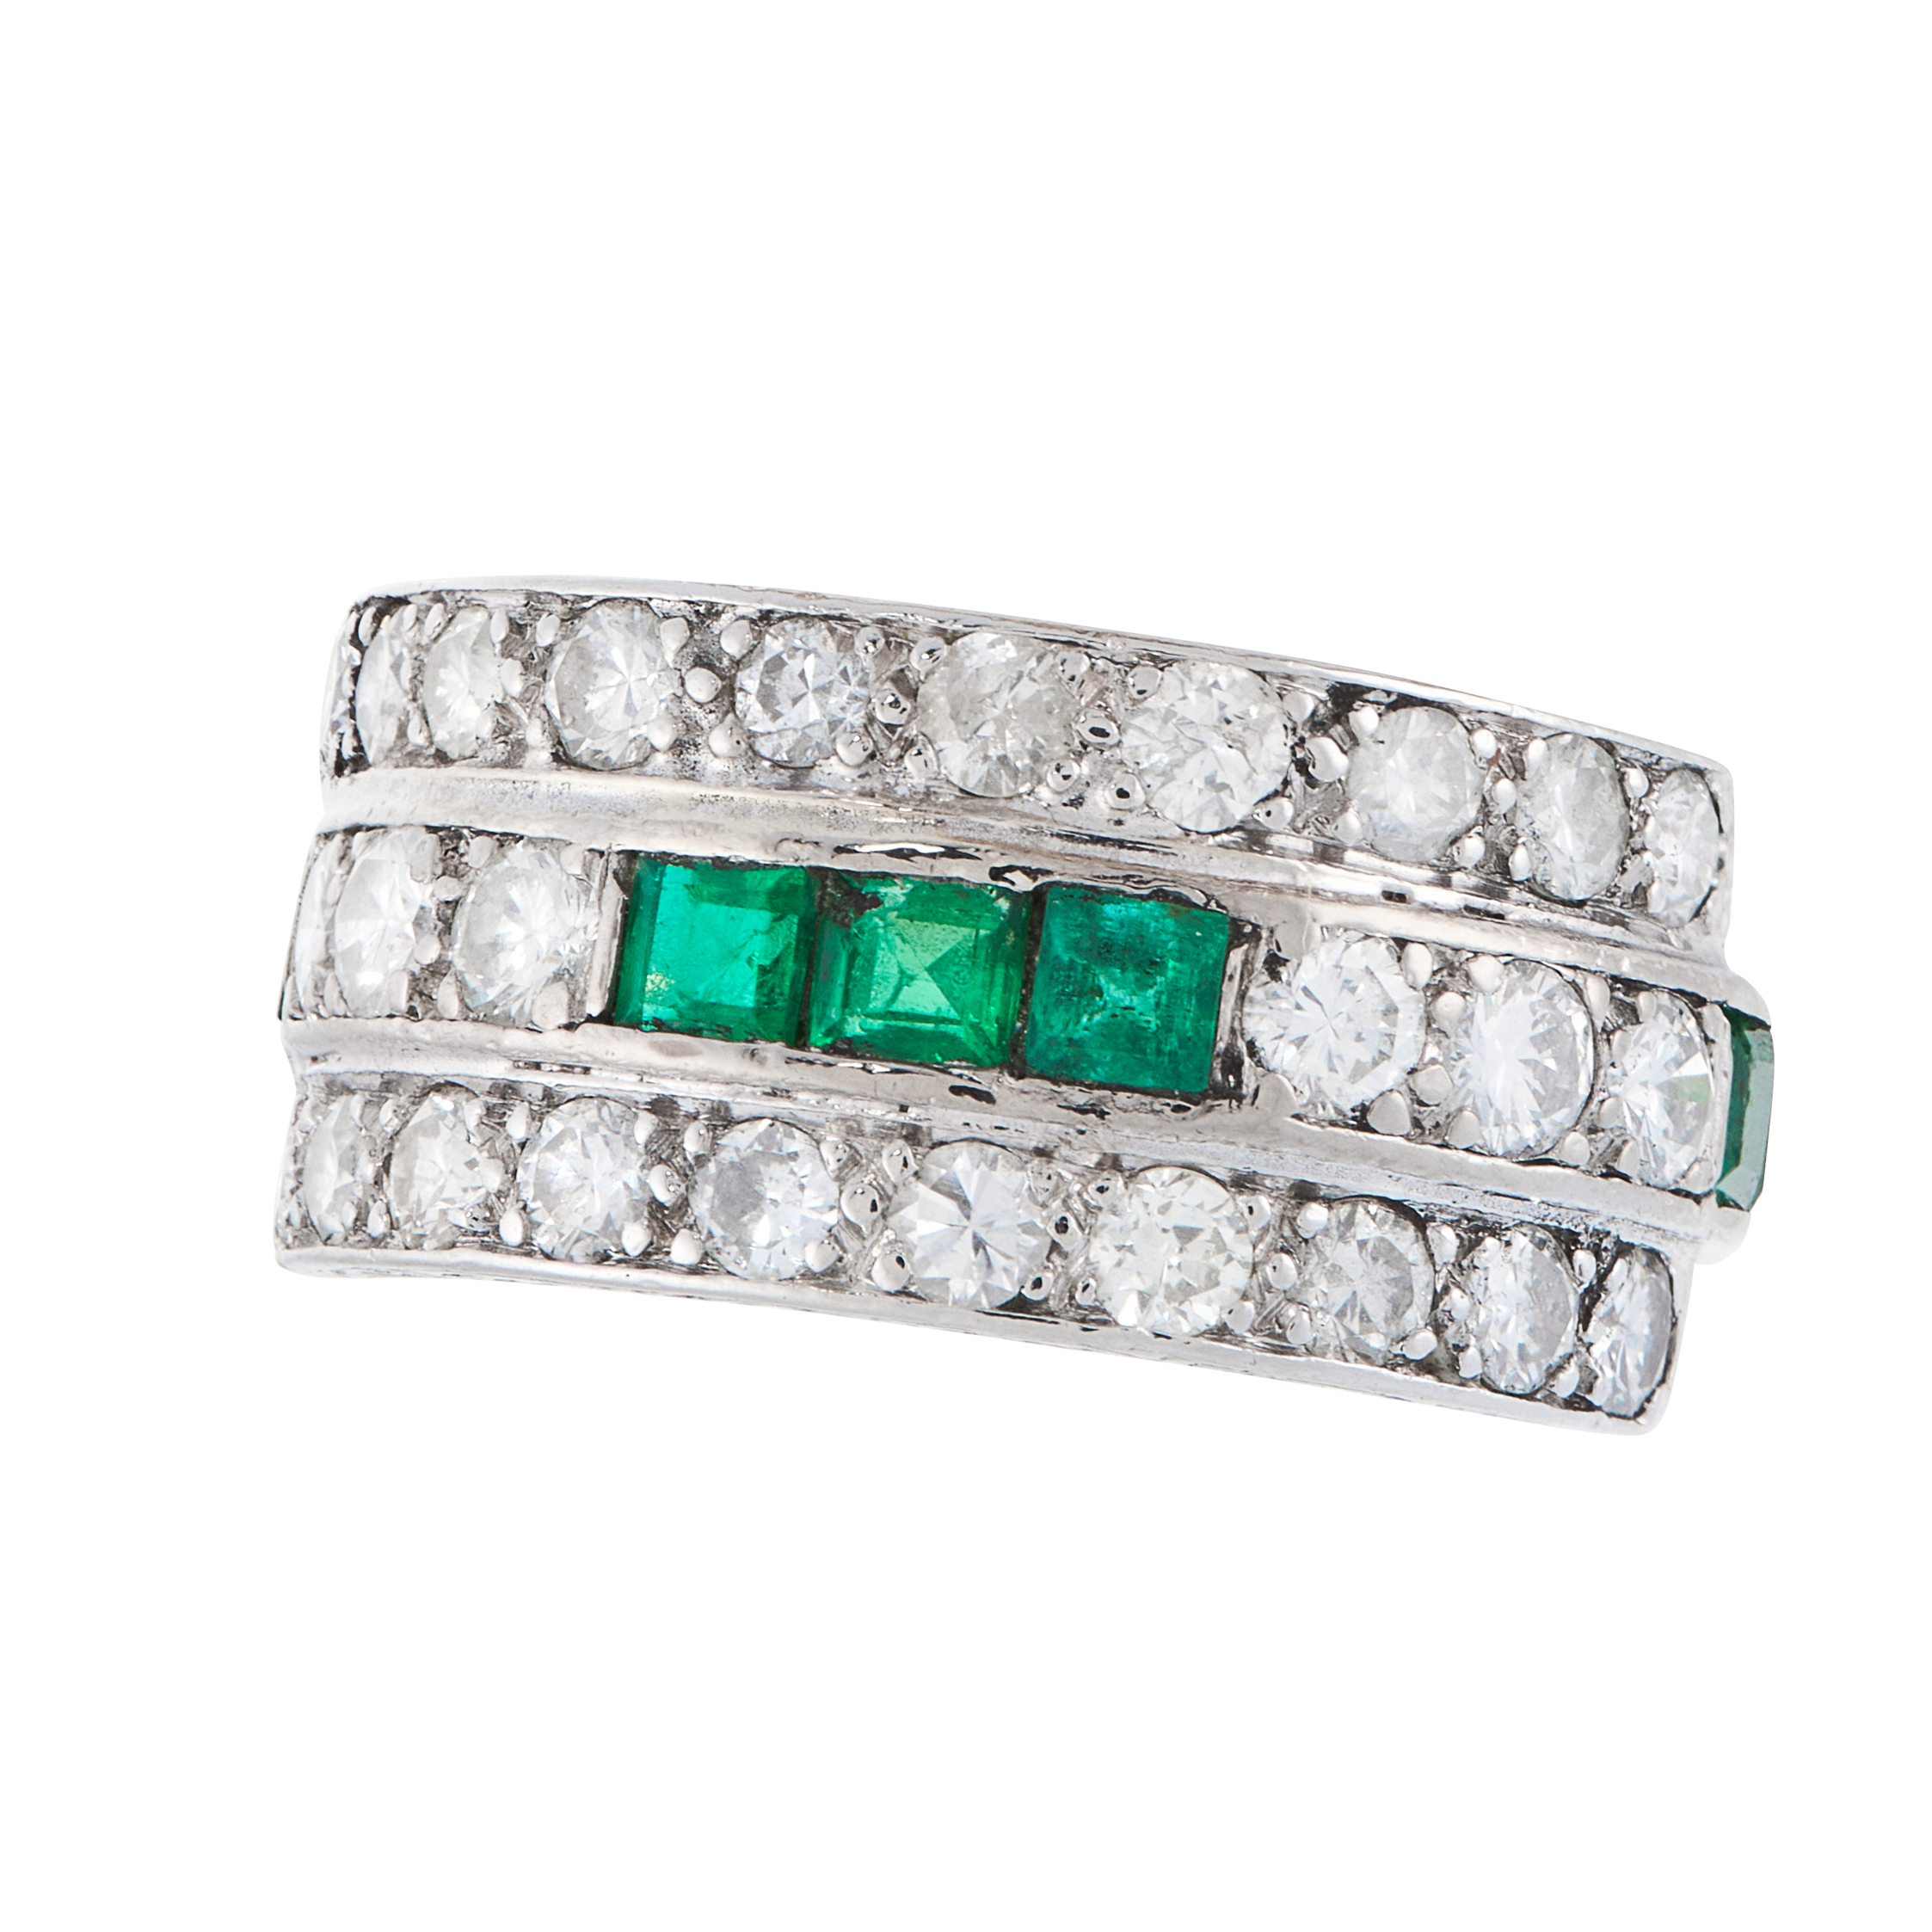 AN EMERALD AND DIAMOND DRESS RING, CIRCA 1940 in platinum, the band set alternately with rows of